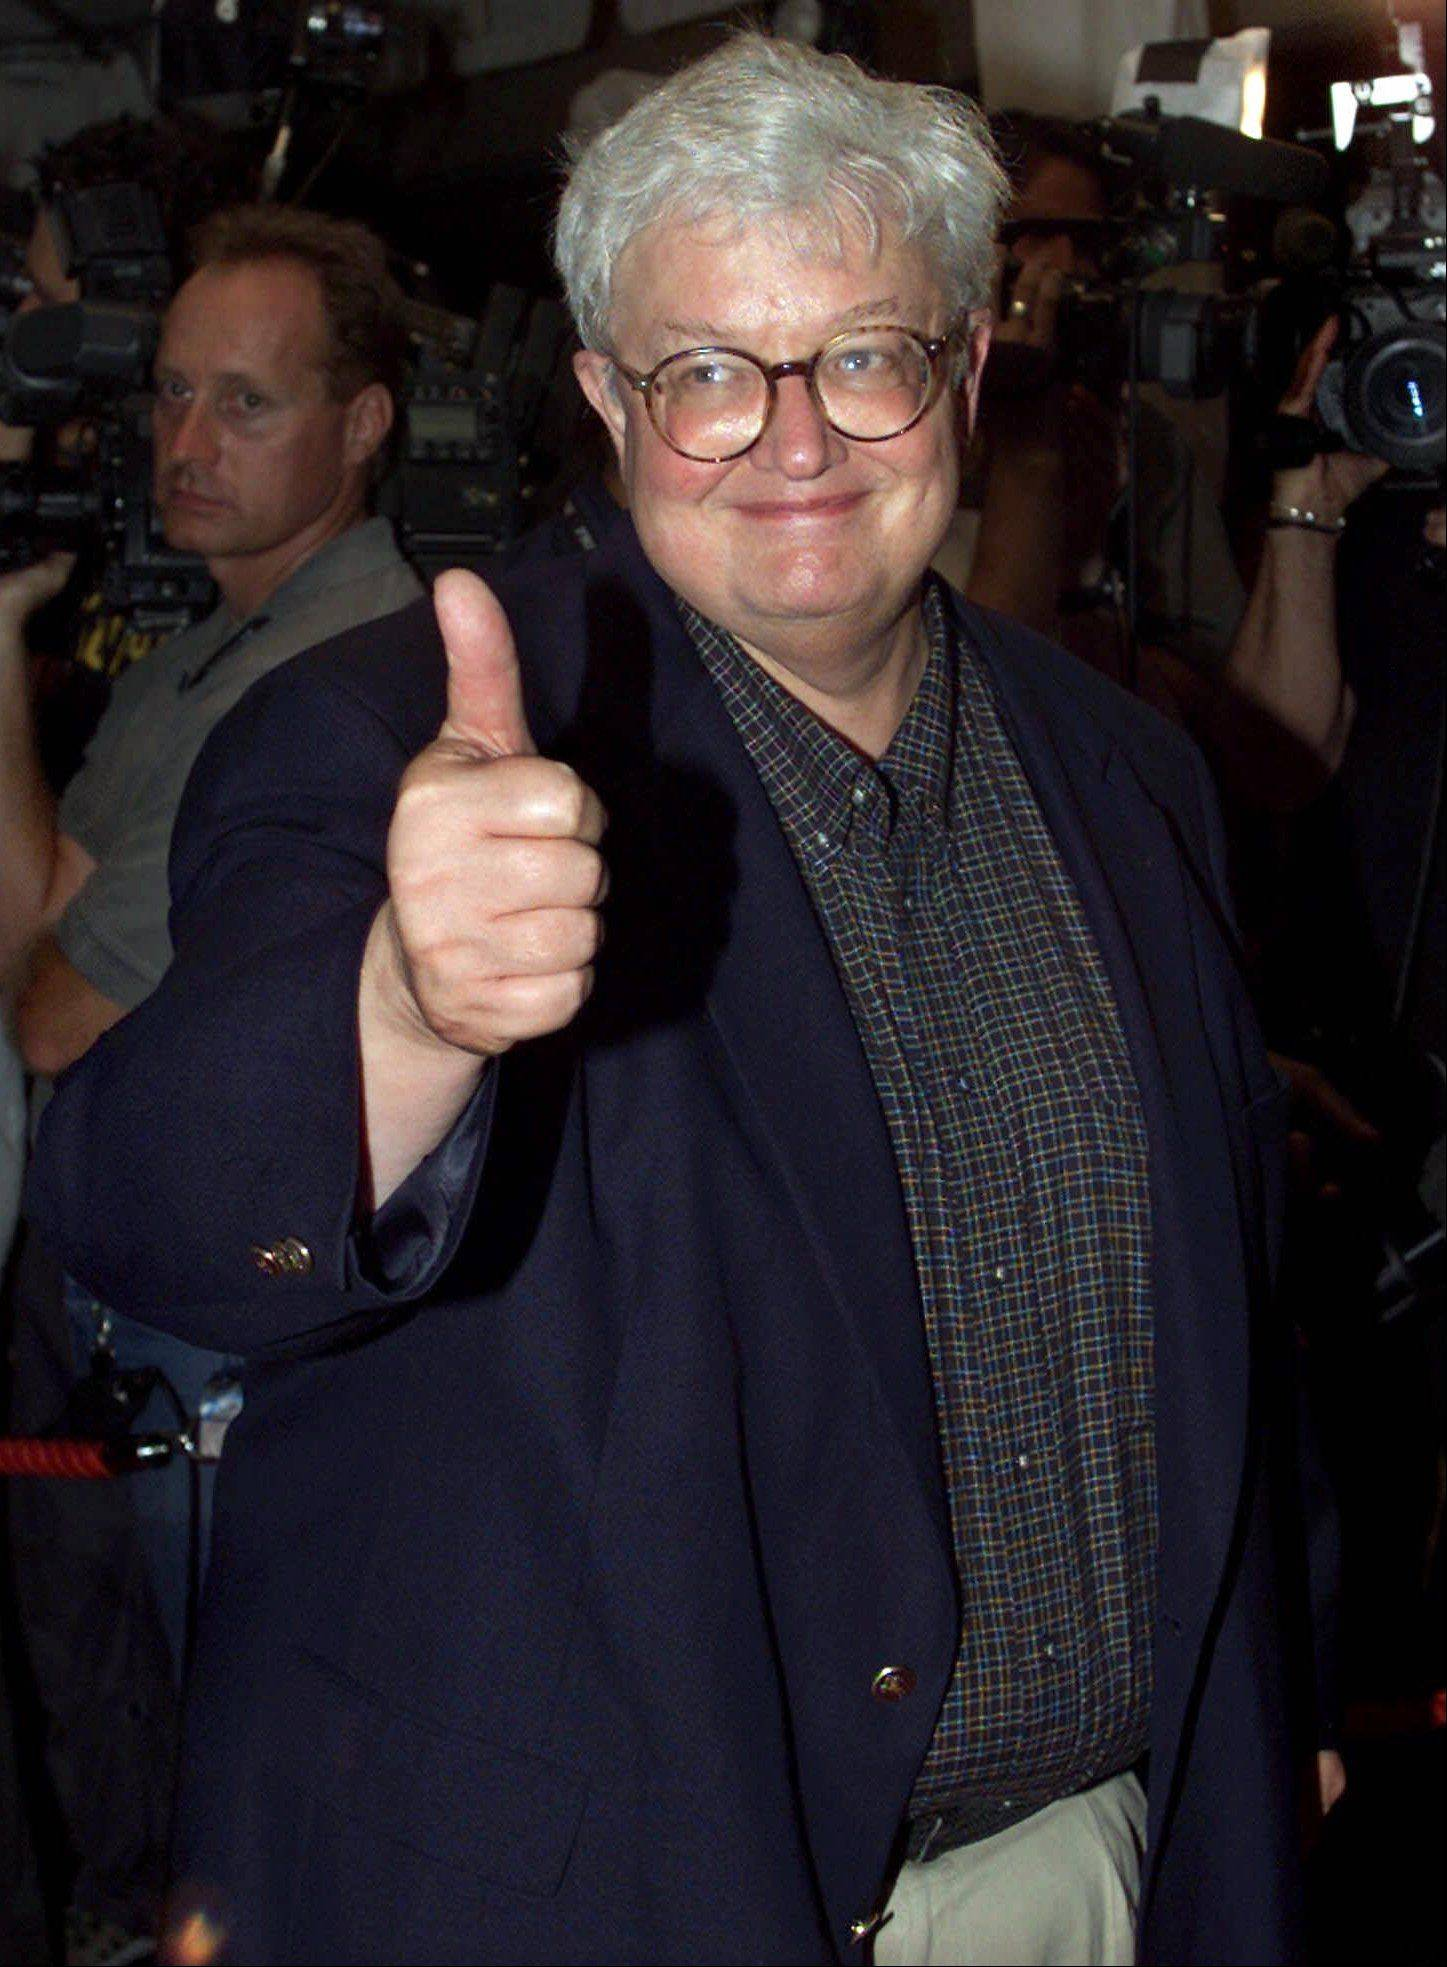 "Movie critic Roger Ebert gives the thumbs up as he arrives on the red carpet for the premiere of the film ""Training Day"" at the Toronto International Film Festival in Toronto, Canada, in this Sept. 7, 2001. Ebert will undergo surgery to remove a cancerous growth on his thyroid gland. The operation for Ebert, a Chicago Sun-Times movie reviewer, is scheduled for Friday, the paper reported Thursday, Feb. 21, 2002."